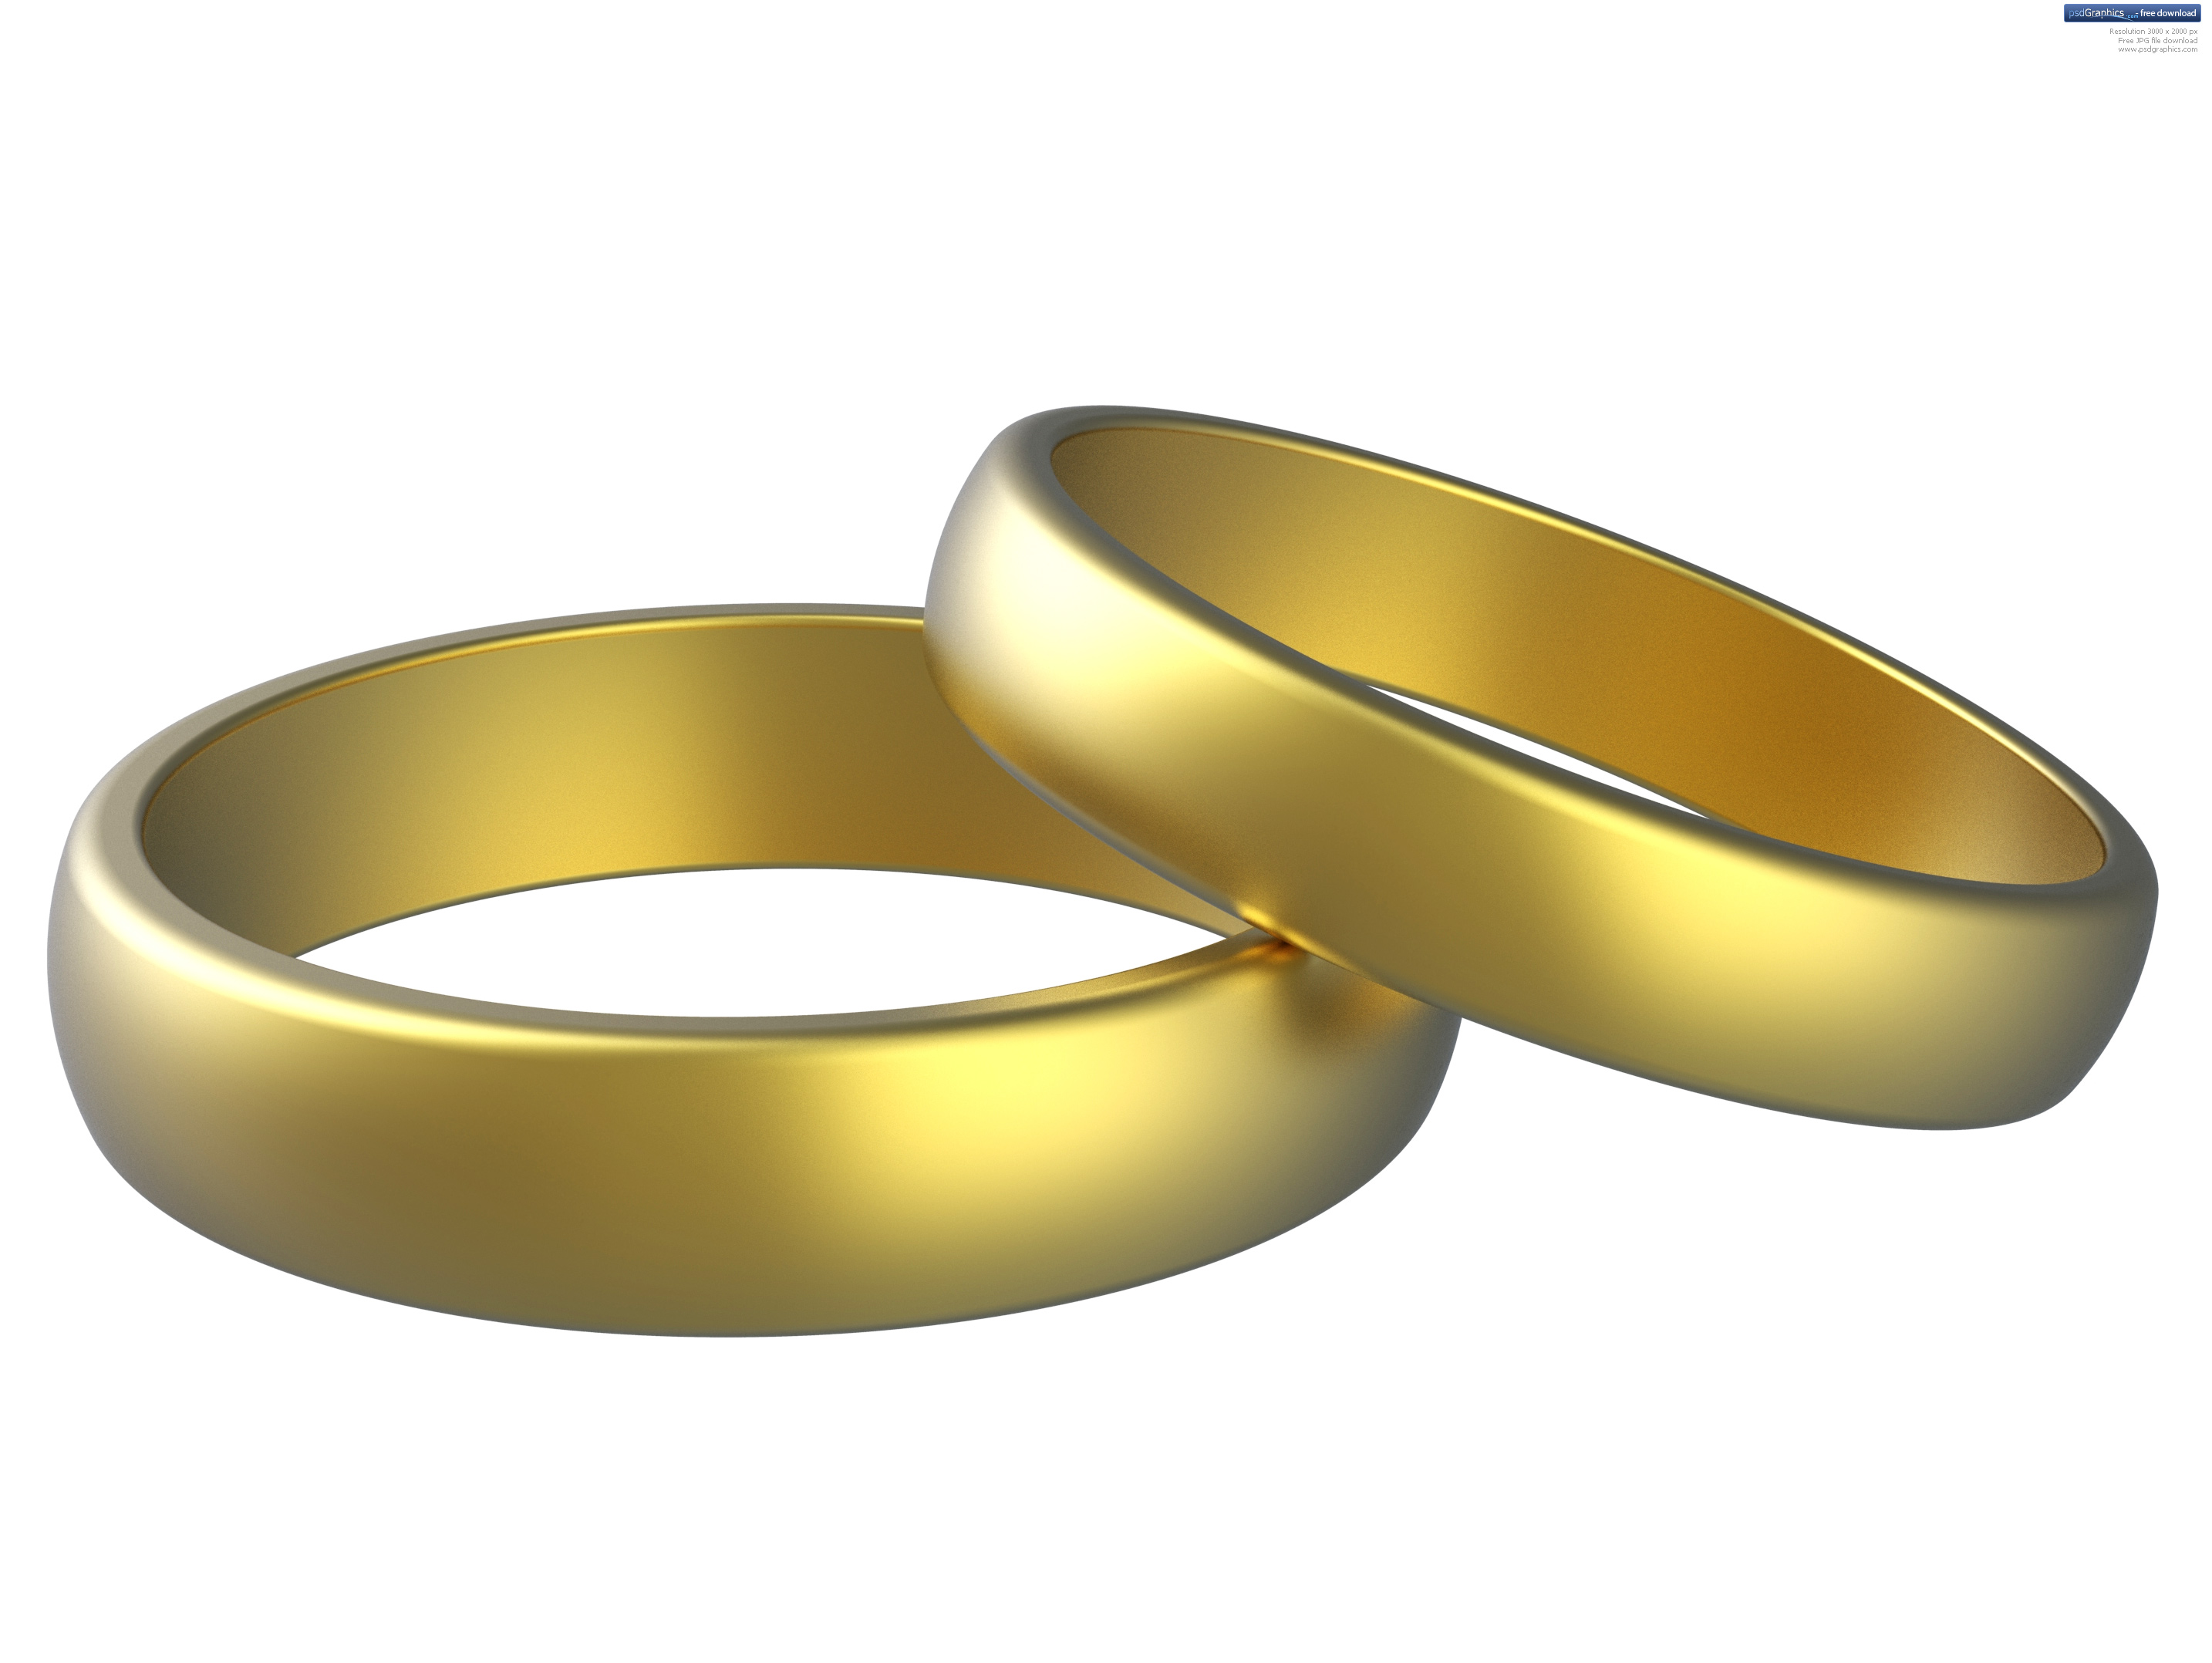 photo rings golden stock wedding image shutterstock illustration